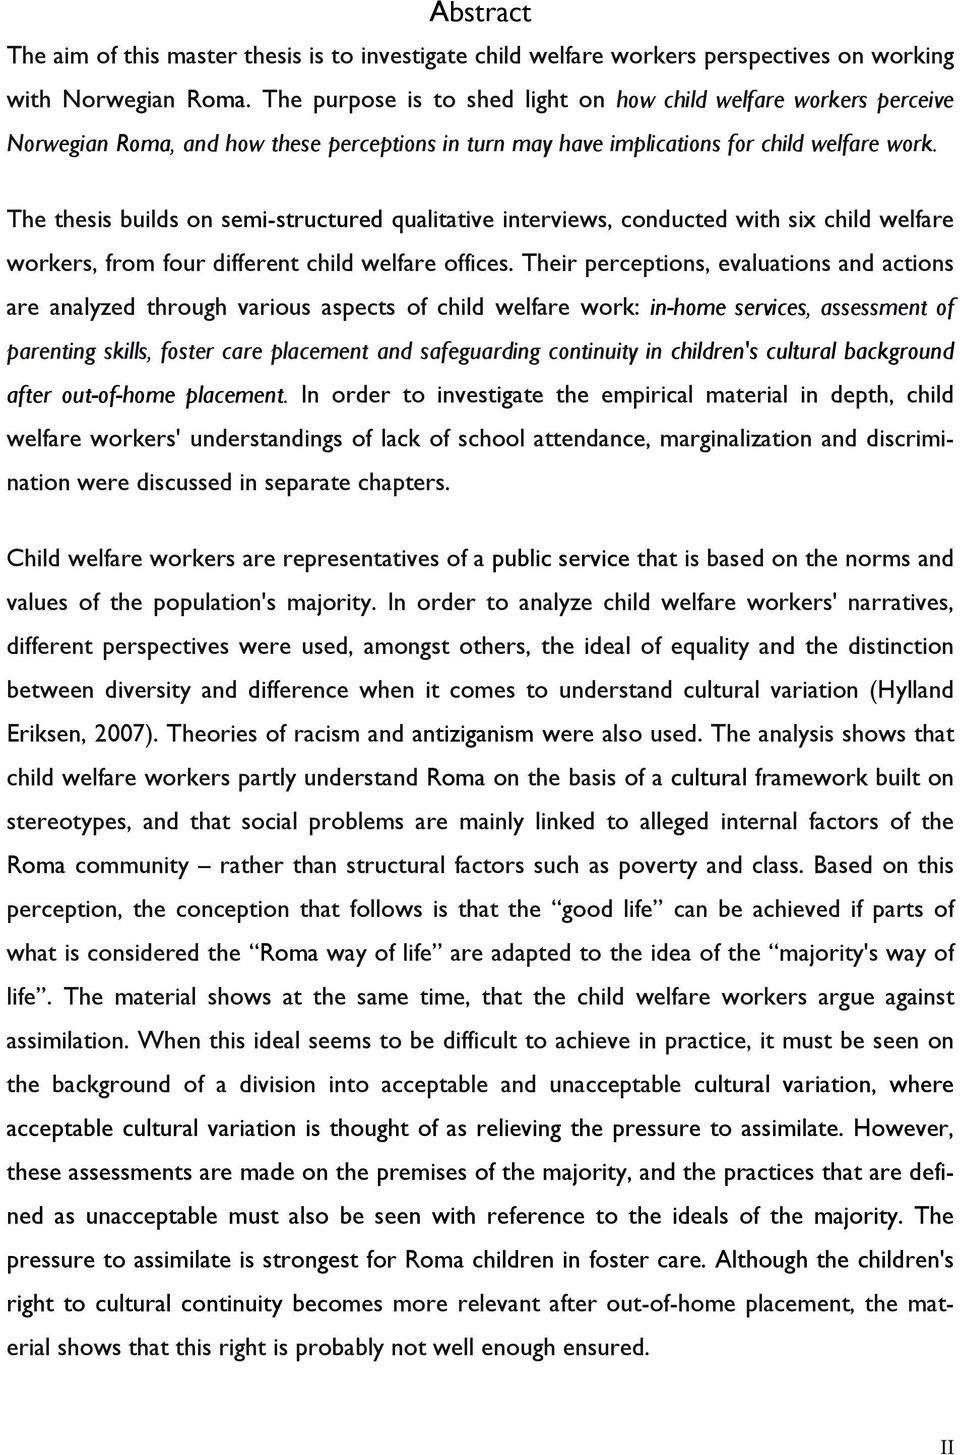 The thesis builds on semi-structured qualitative interviews, conducted with six child welfare workers, from four different child welfare offices.